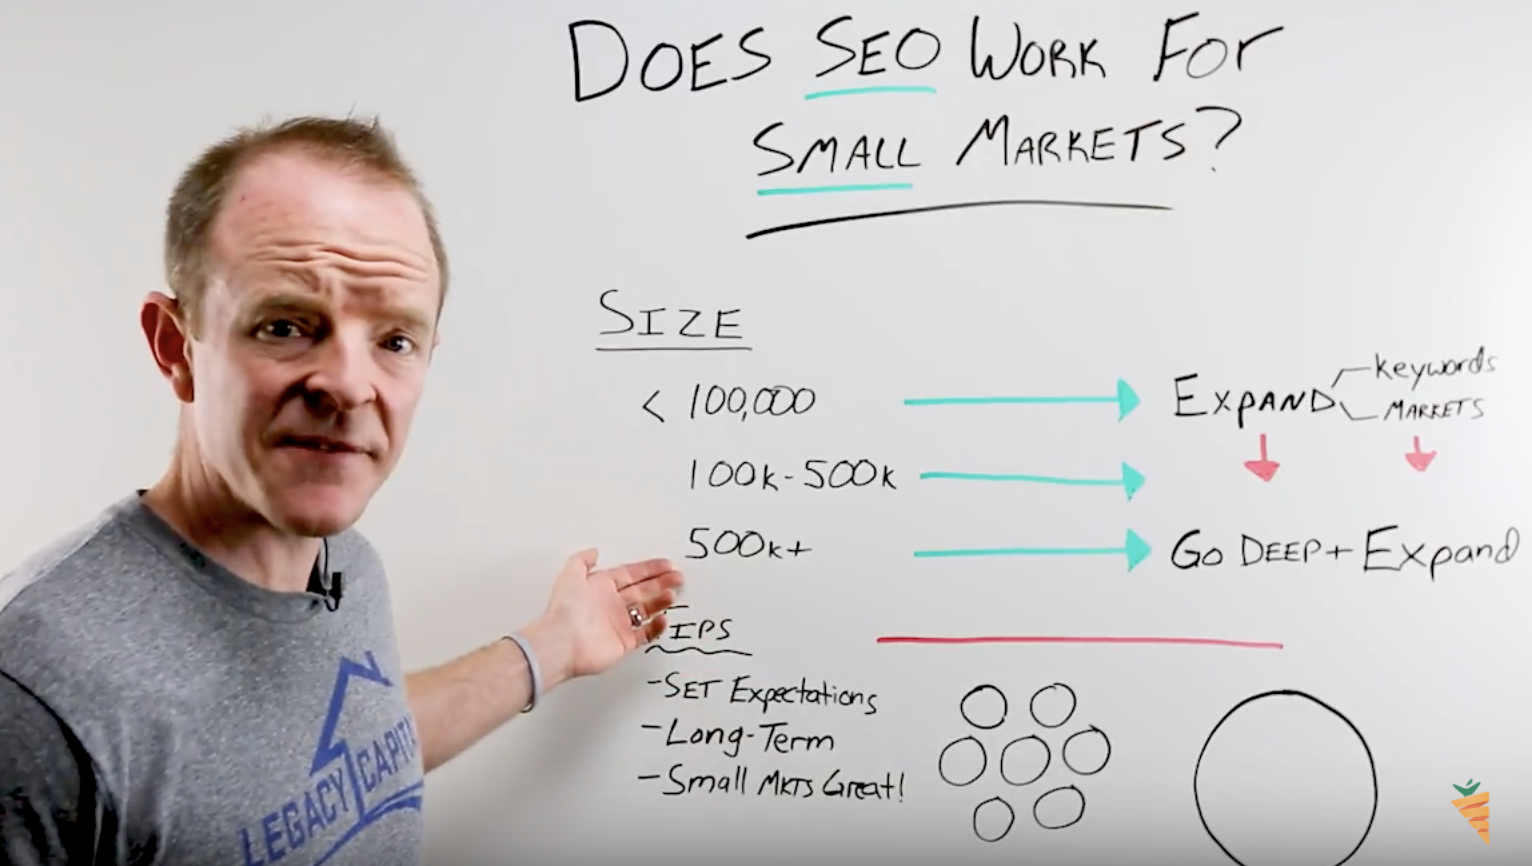 seo for large real estate markets